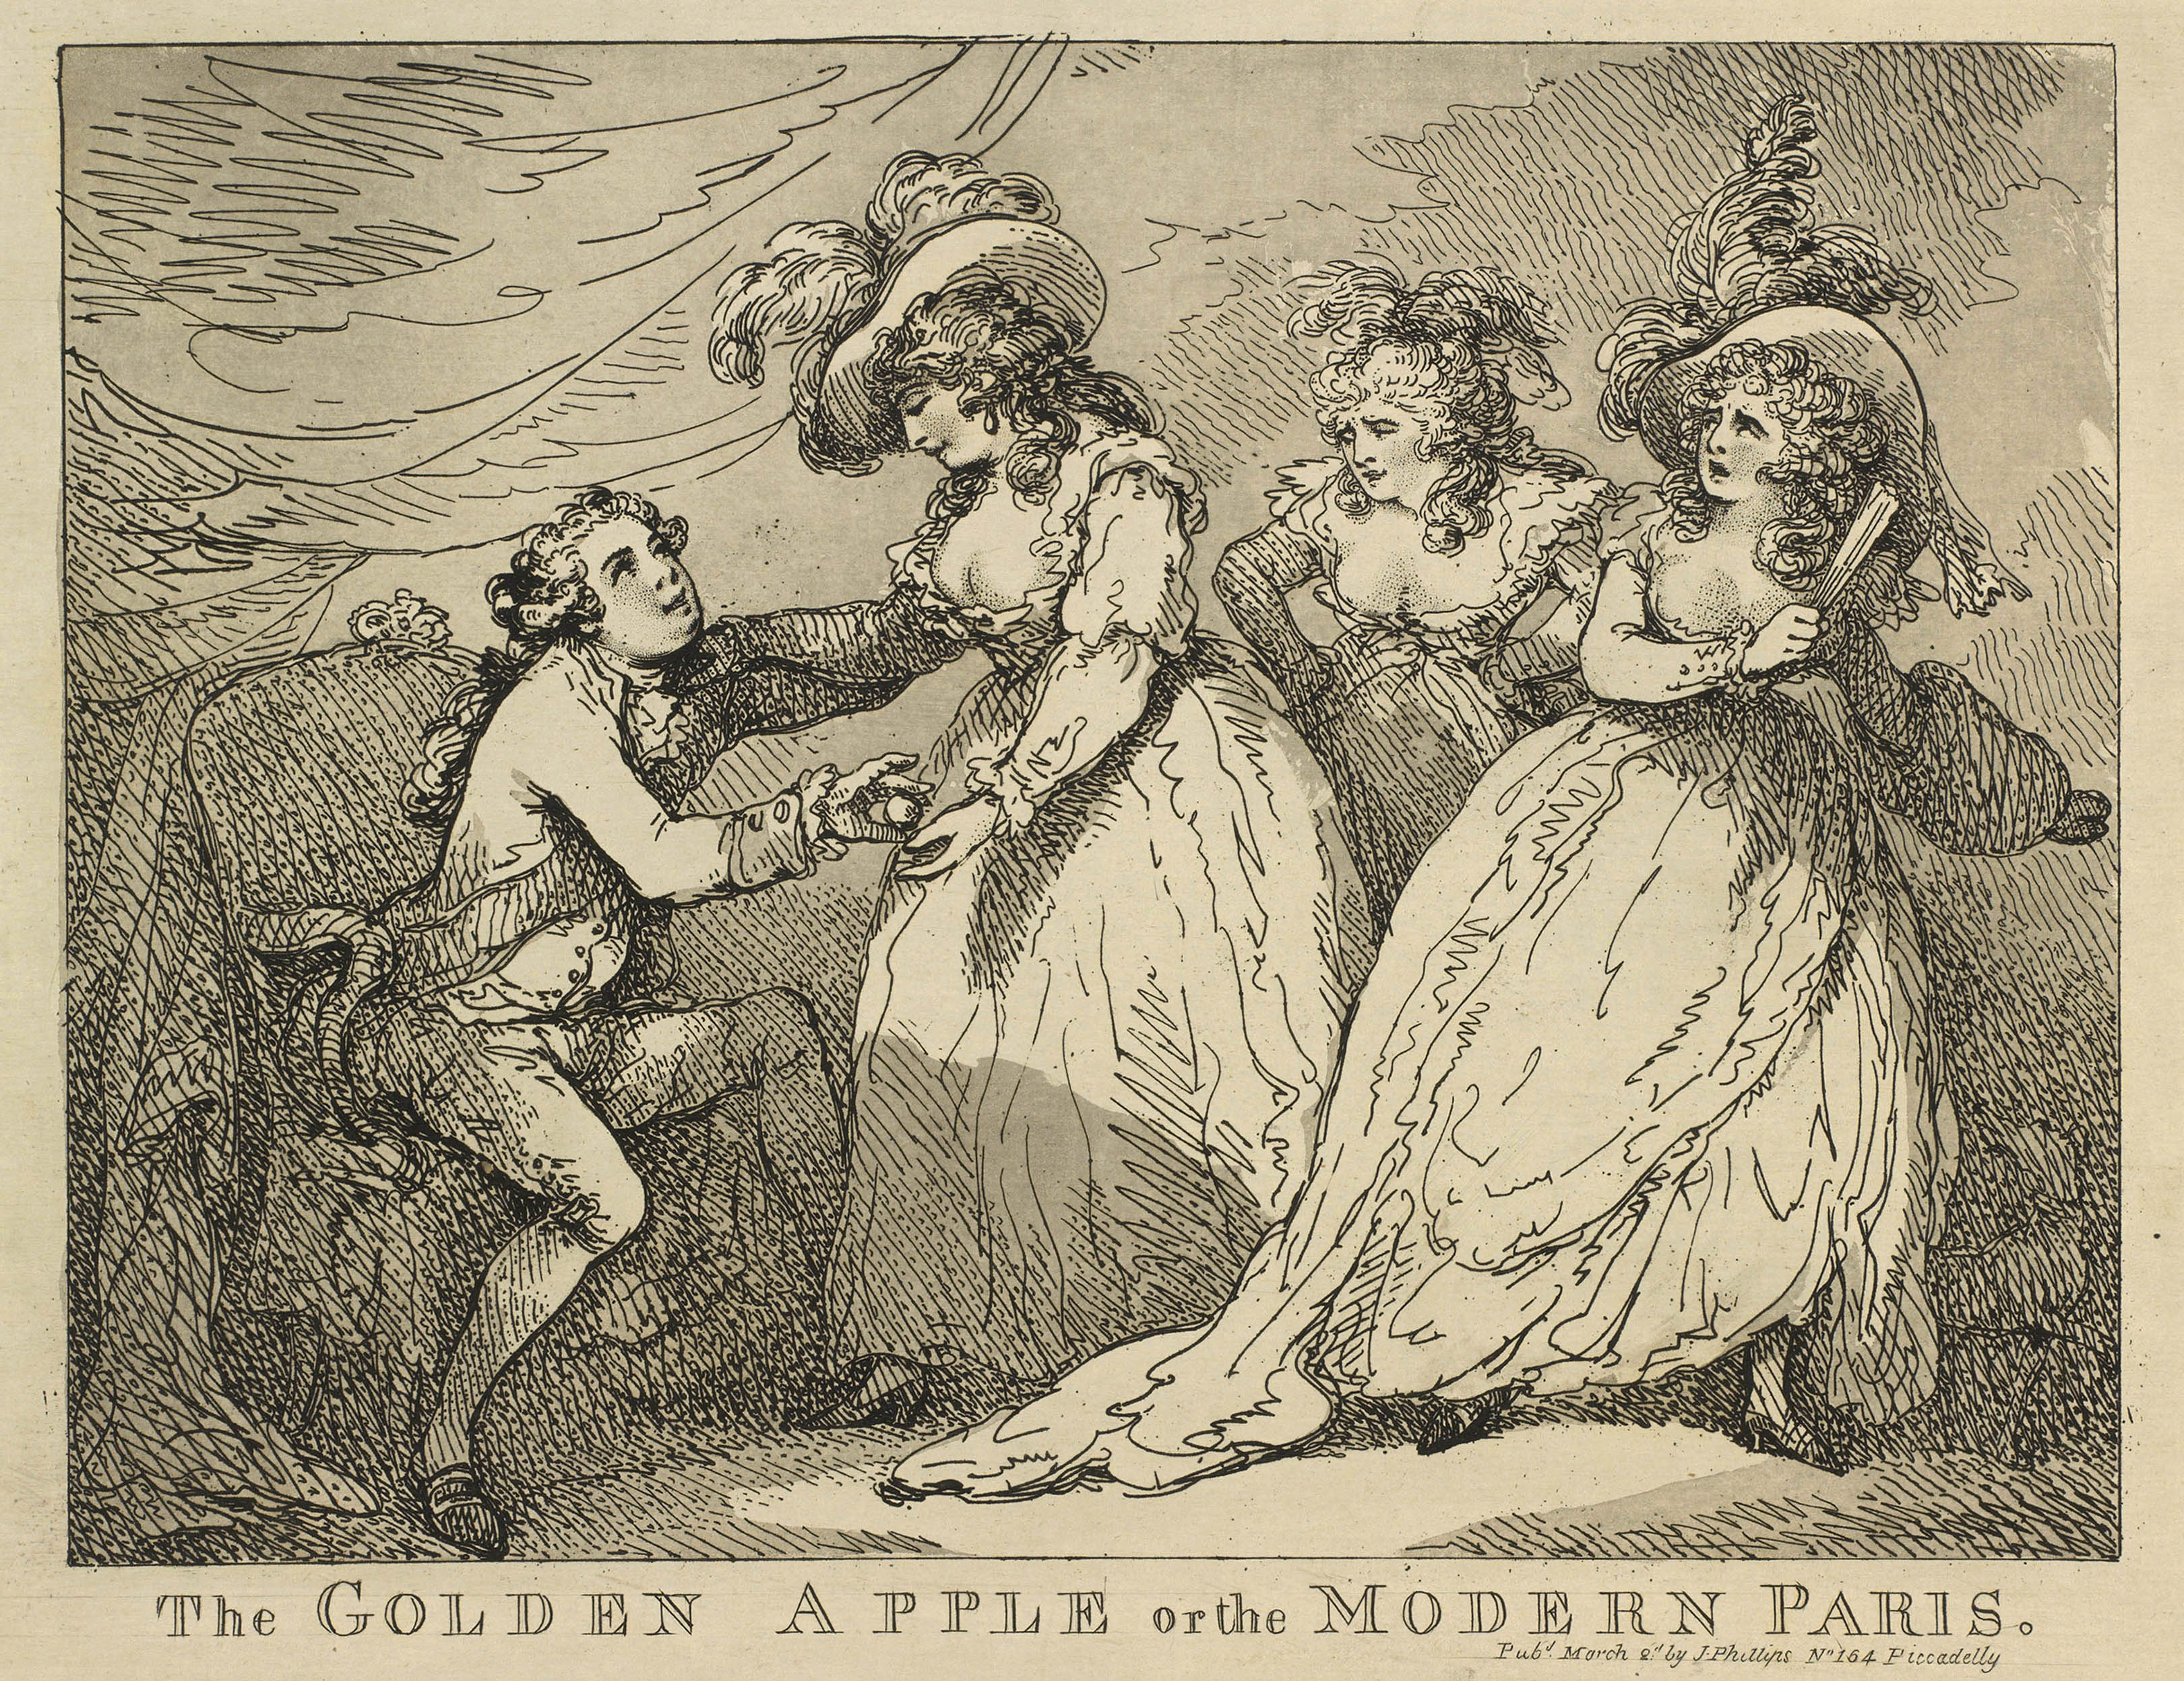 Thomas Rowlandson, The Golden Apple, or the Modern Paris, 1785